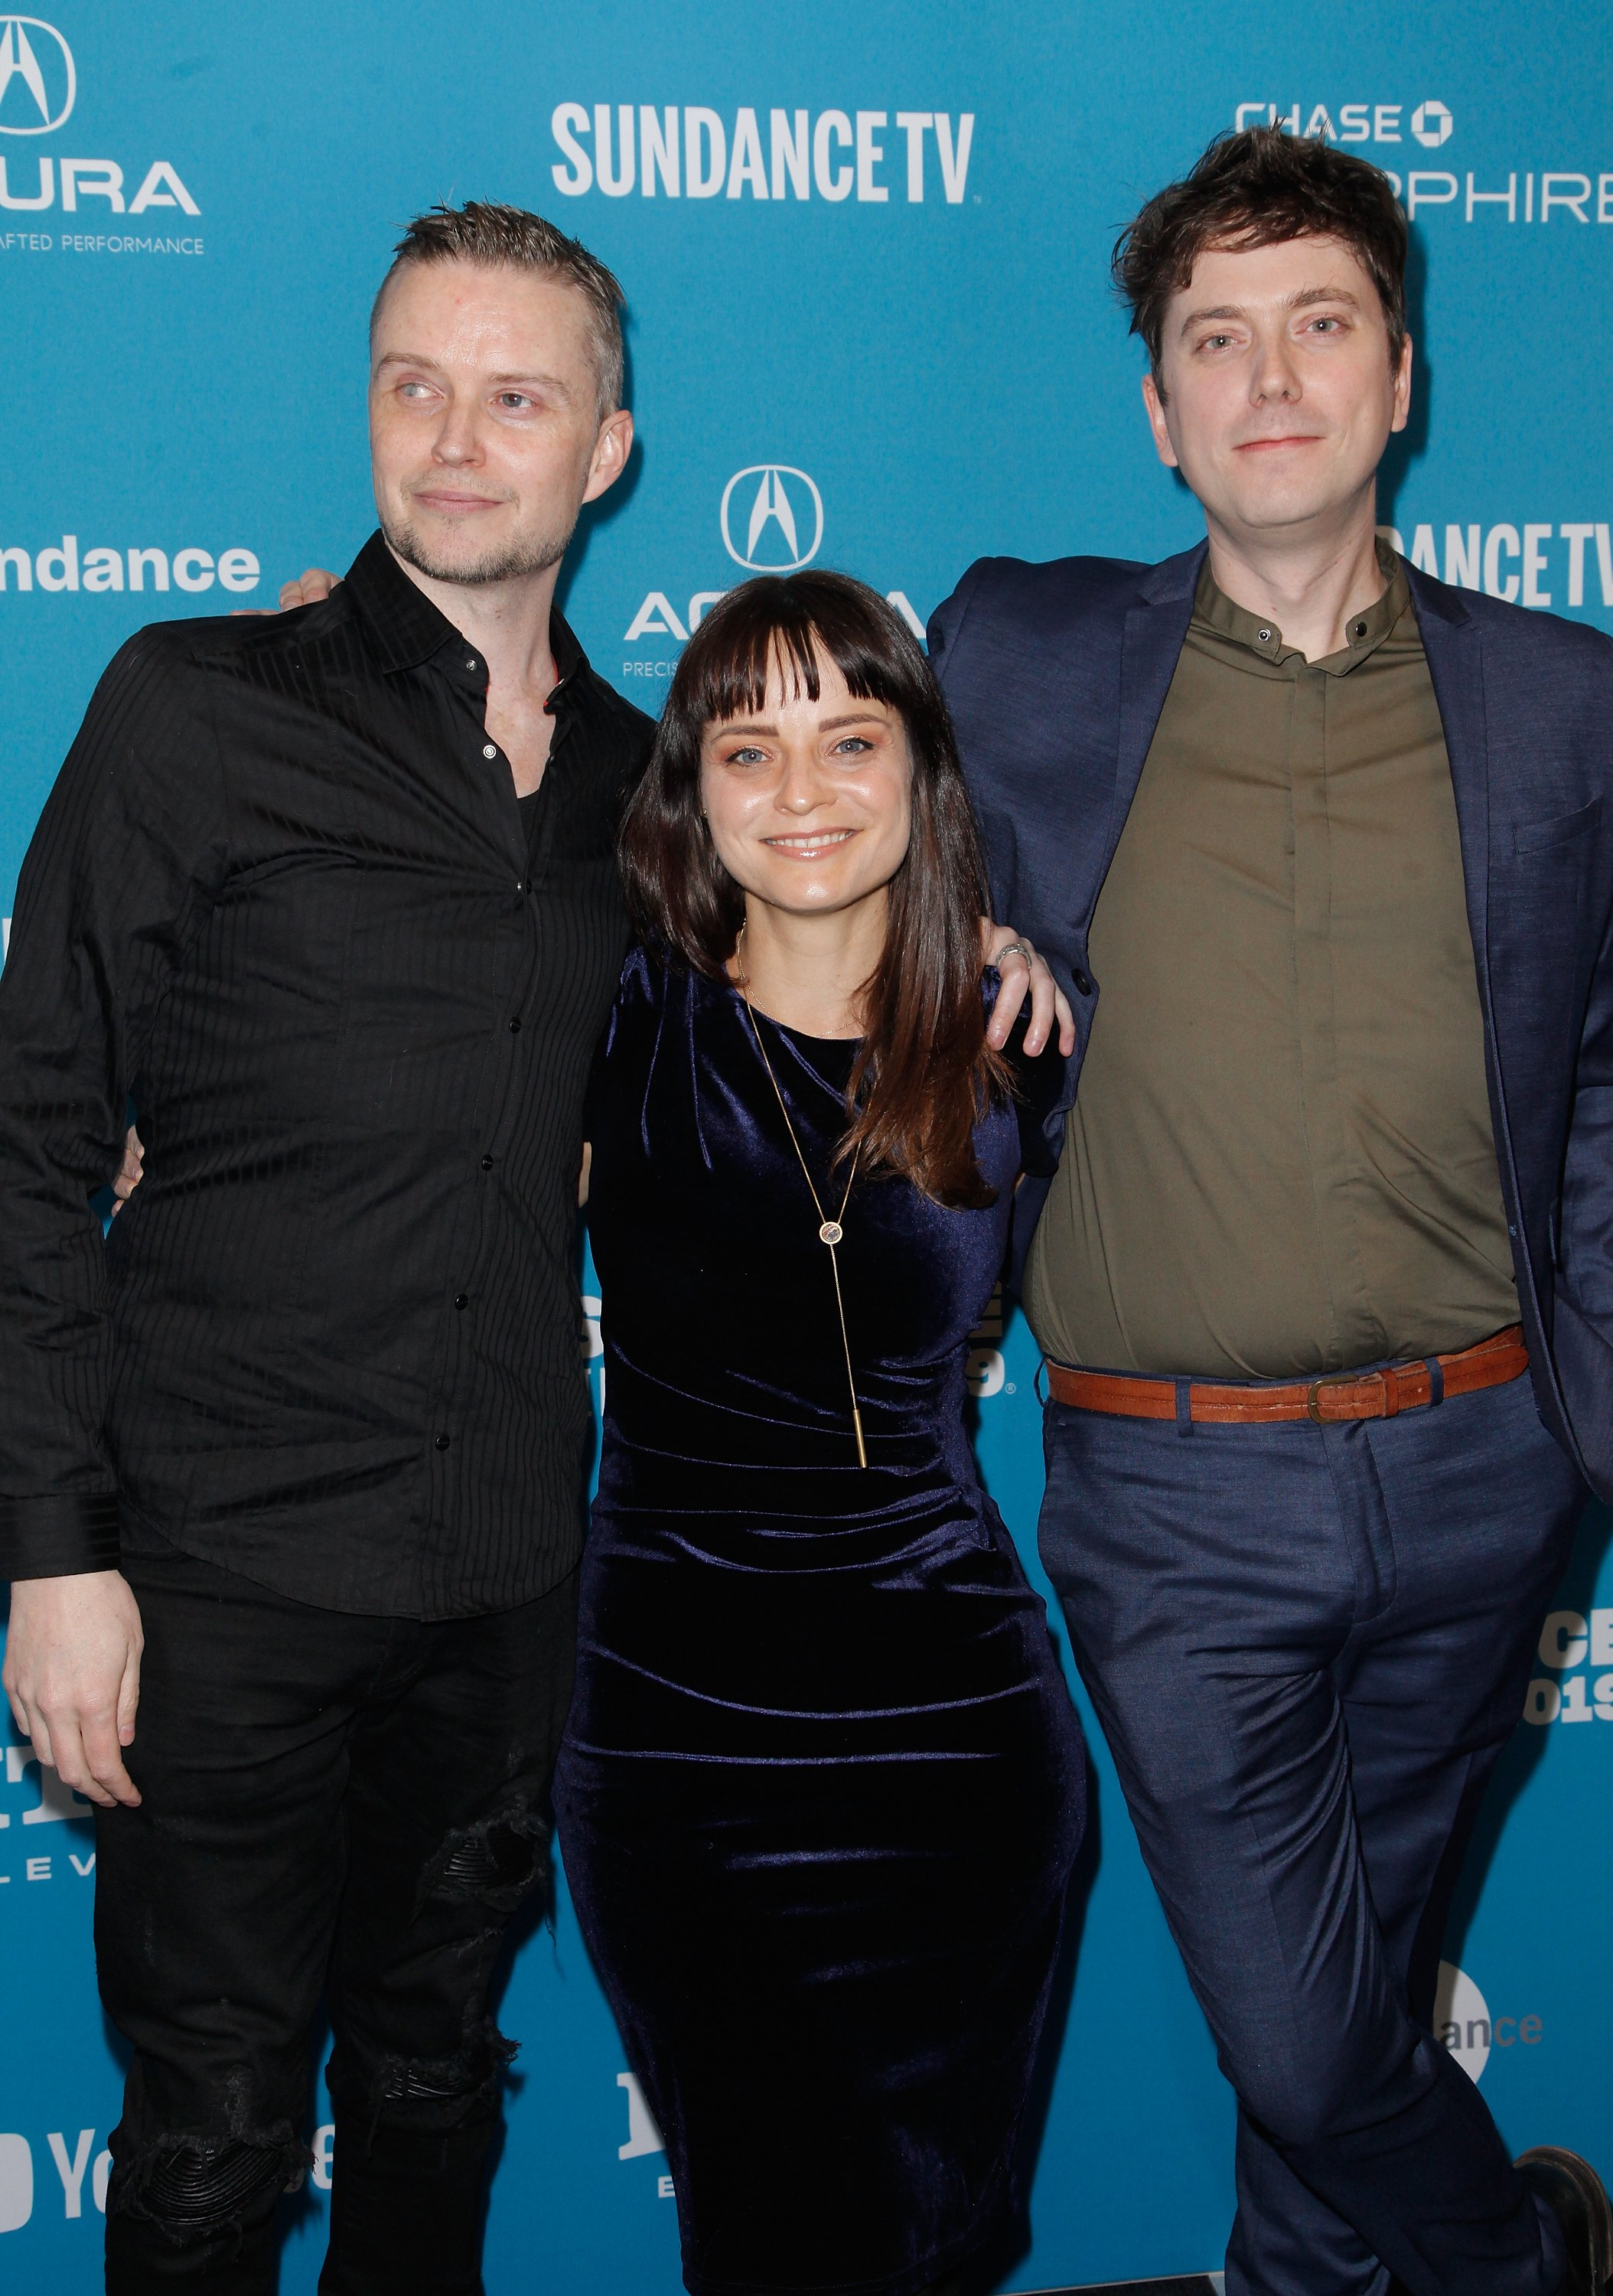 "PARK CITY, UT - JANUARY 25: (L-R) Lucien Greaves, Penny Lane, and Gabriel Sedgwick attend the ""Hail Satan?"" Premiere during the 2019 Sundance Film Festival at The Ray on January 25, 2019 in Park City, Utah. (Photo by Tibrina Hobson/Getty Images)PARK CITY, UT - JANUARY 25: (L-R) Lucien Greaves, Penny Lane, and Gabriel Sedgwick attend the ""Hail Satan?"" Premiere during the 2019 Sundance Film Festival at The Ray on January 25, 2019 in Park City, Utah. (Photo by Tibrina Hobson/Getty Images)"